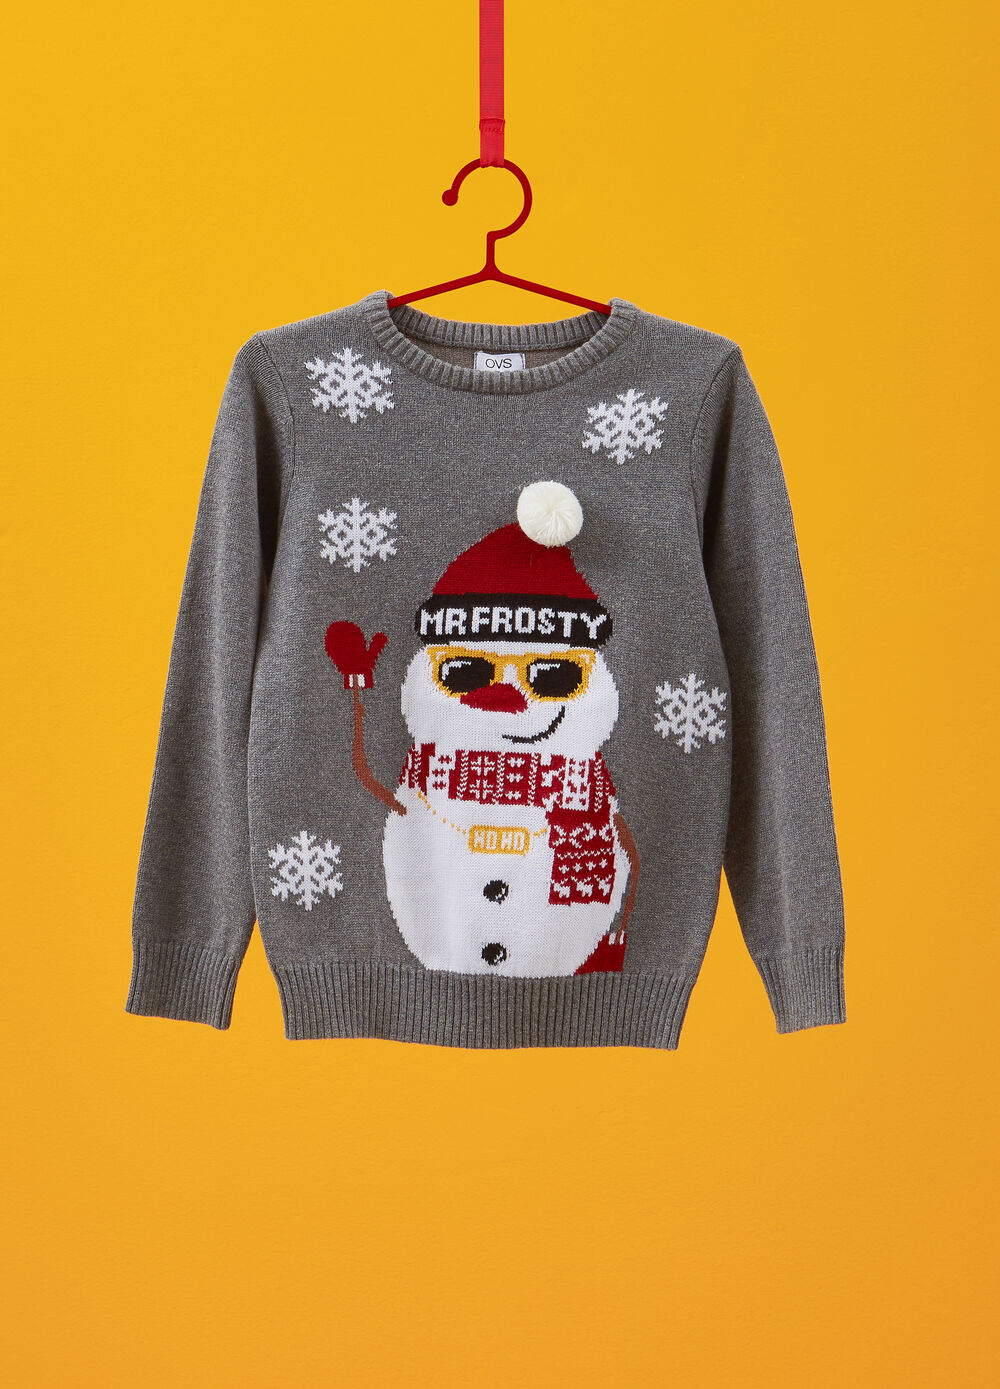 Christmas sweater with snowman embroidery